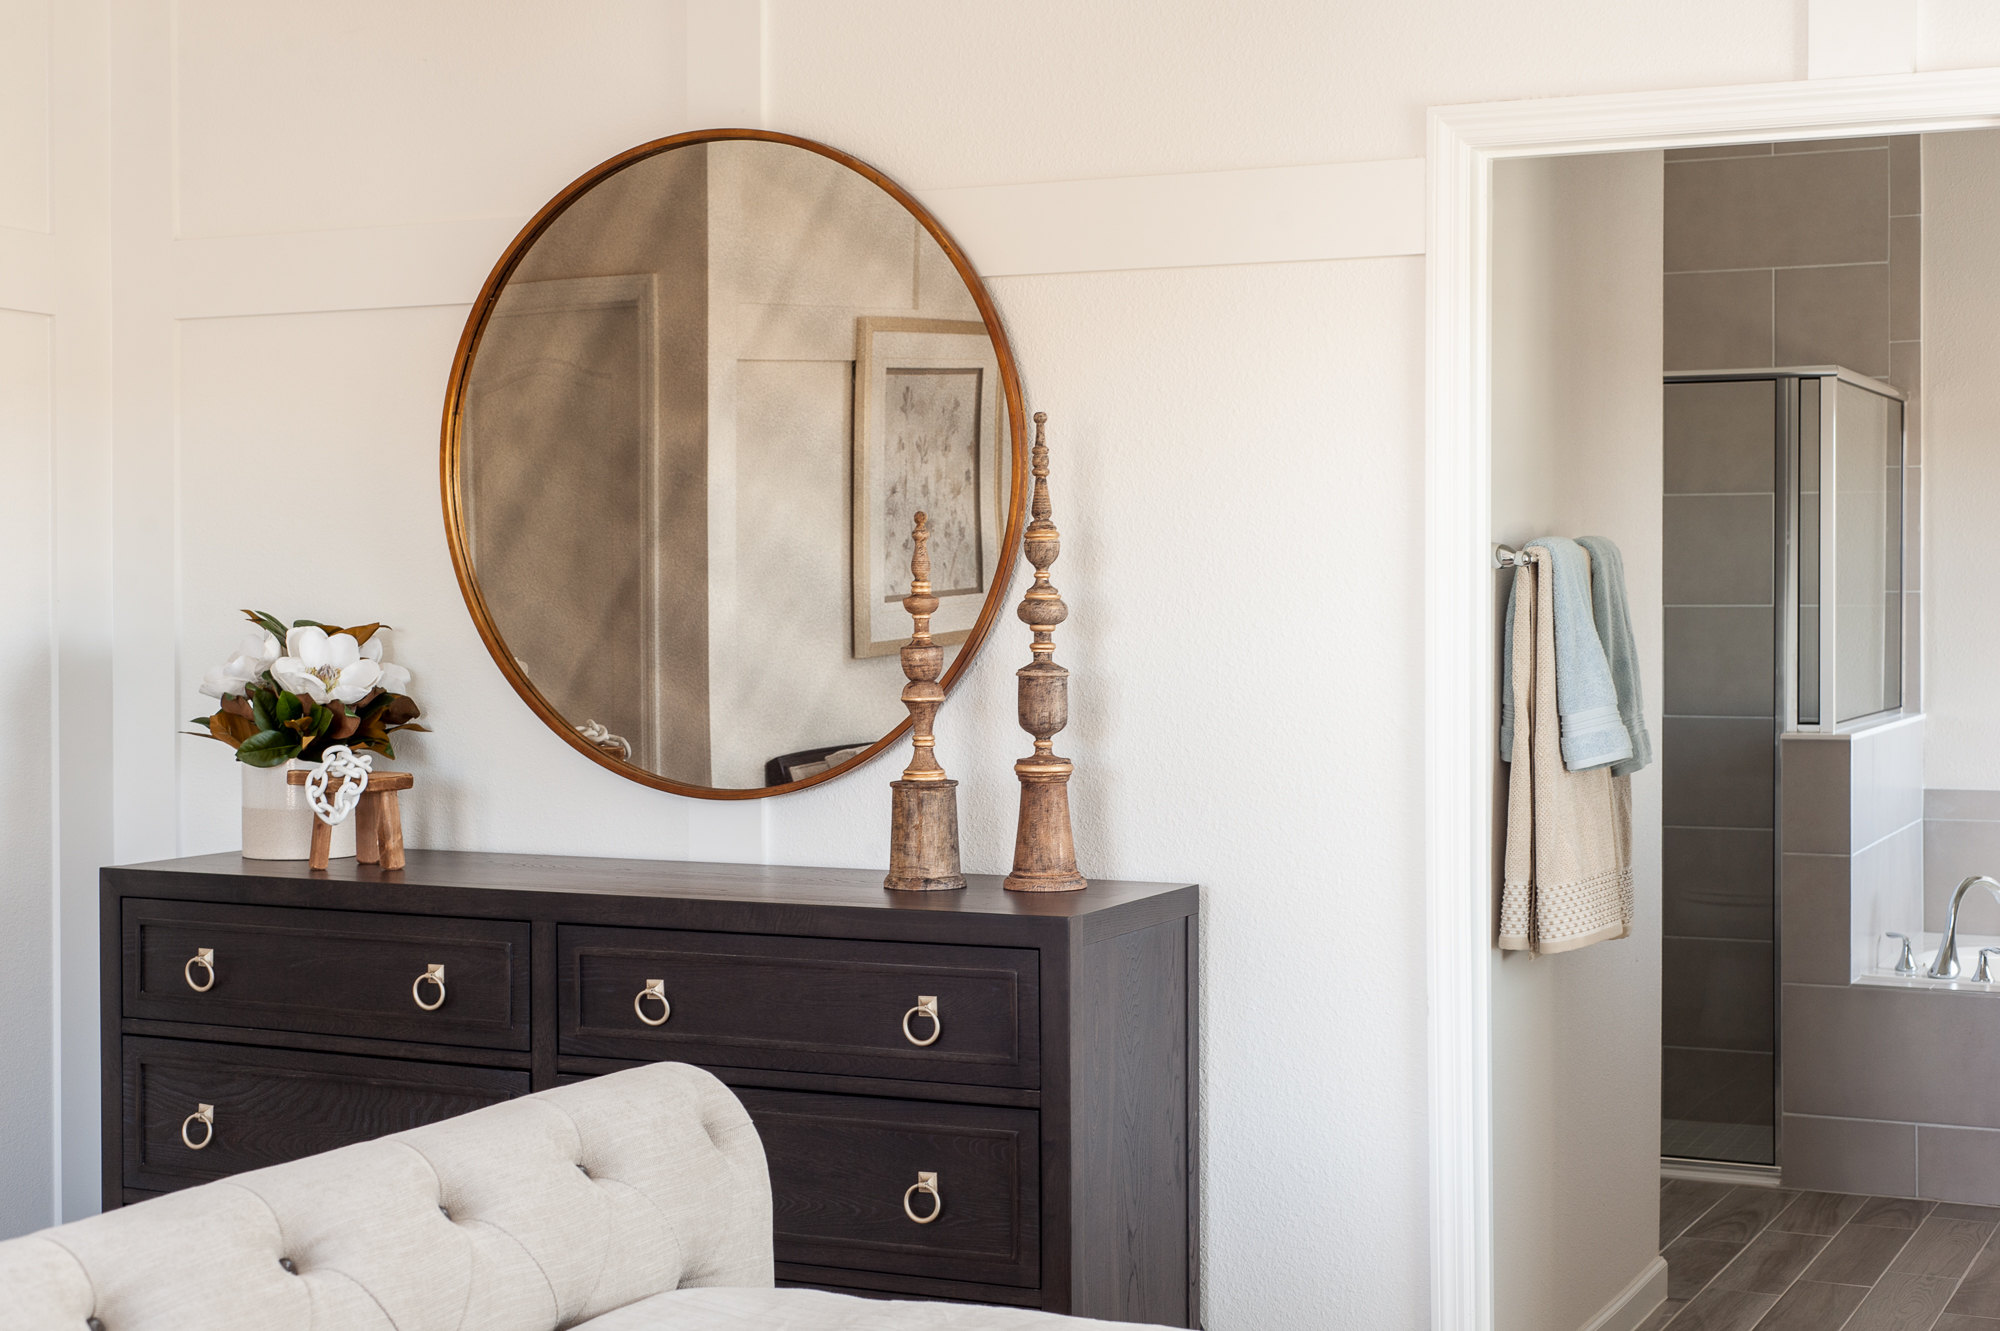 Micamy_Interior Designer_Design_Interior_Model_Merchandising_Owners_Suite_Universal_Furniture_Traditional_Transitional_Dresser_Bronze_Bedroom_Vanity_Gold Mirror.jpg